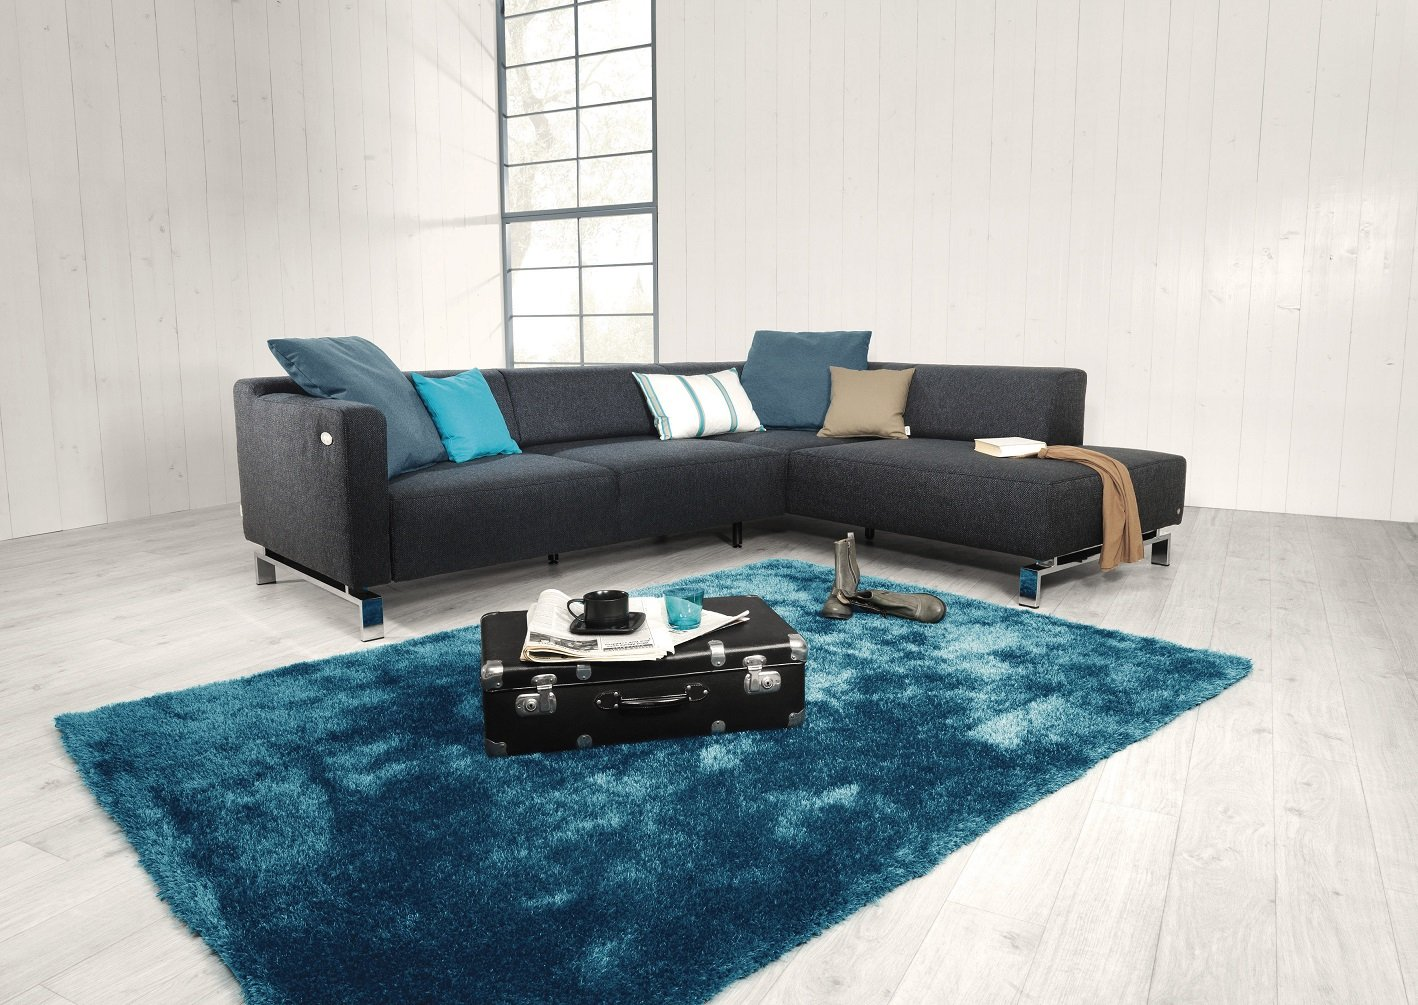 Tom Tailor Sofas Homes By Bdi Furniture Malta